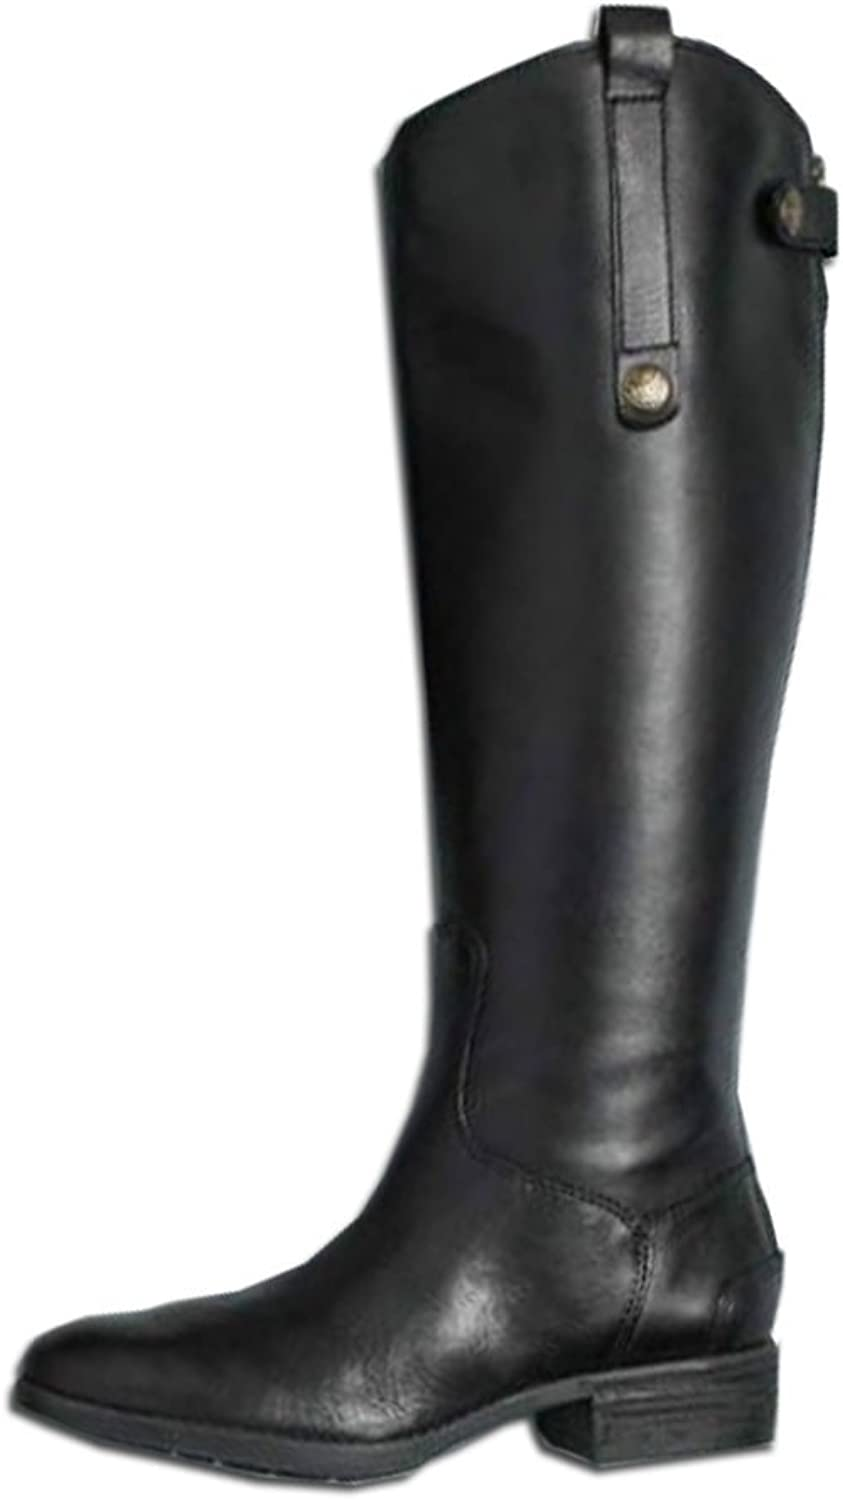 Kaloosh Women's Fashion Concise British Style Pointed Toe Comfort Square Heel Knee high Boots